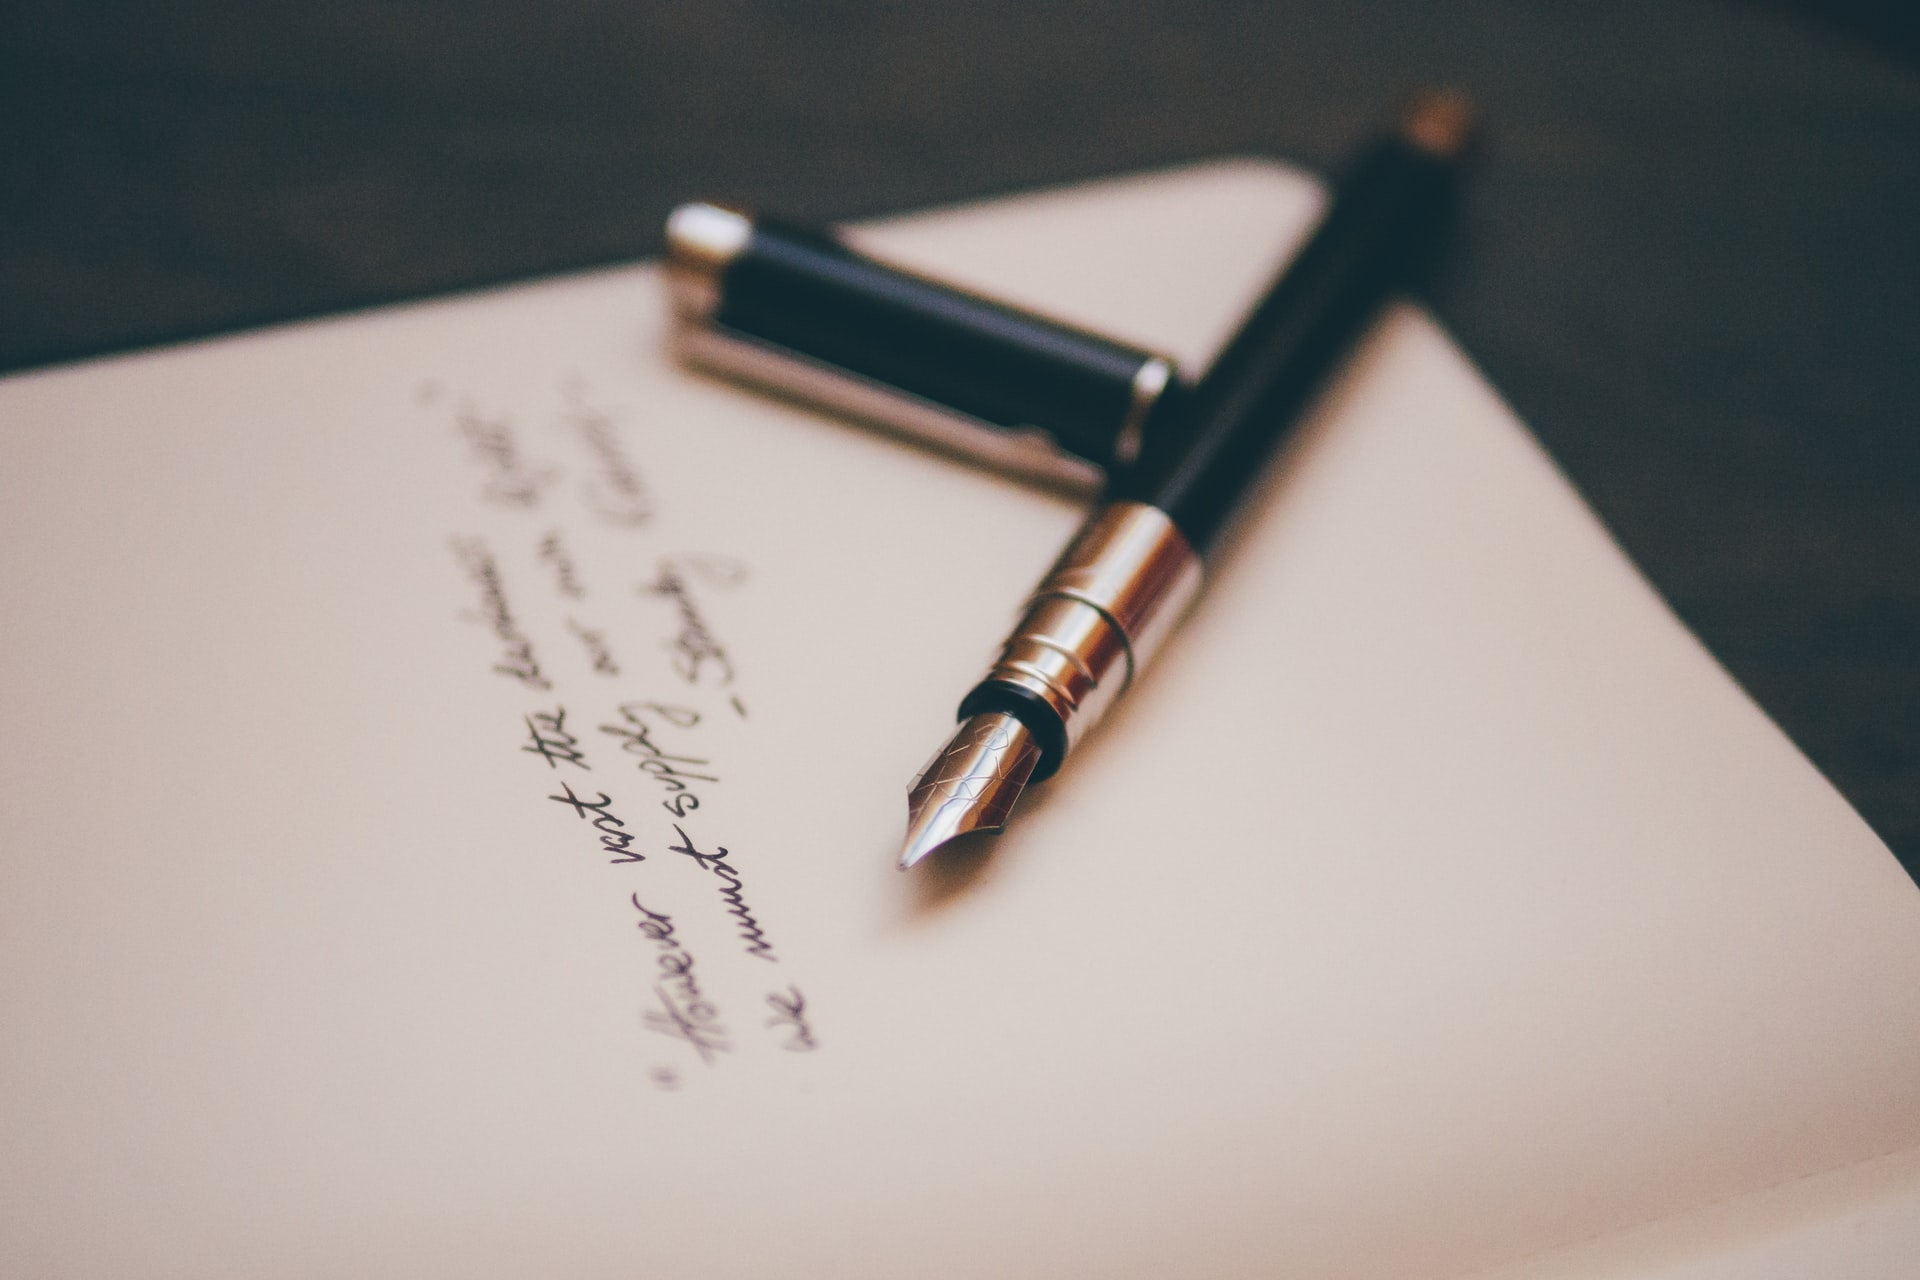 Pen on paper signing a document - All that glitters, is not gold - Hughes v Pritchard and others [2021] - Aaron and Partners